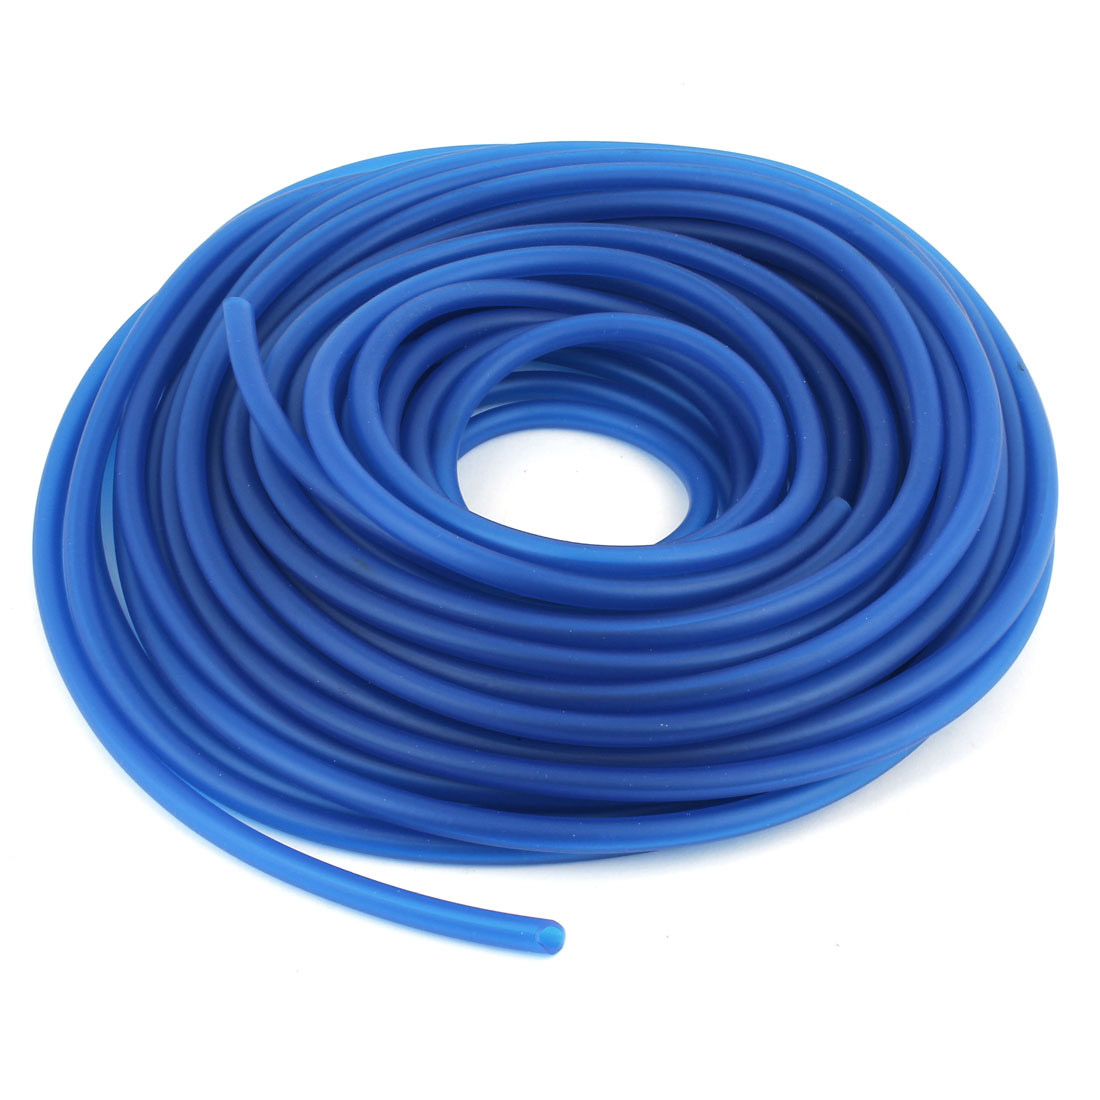 59ft Long 5mm ID Blue Fuel Line Scooter Boat Jet Ski Gas Lawn Mover Atv Pocket Dirt Bike